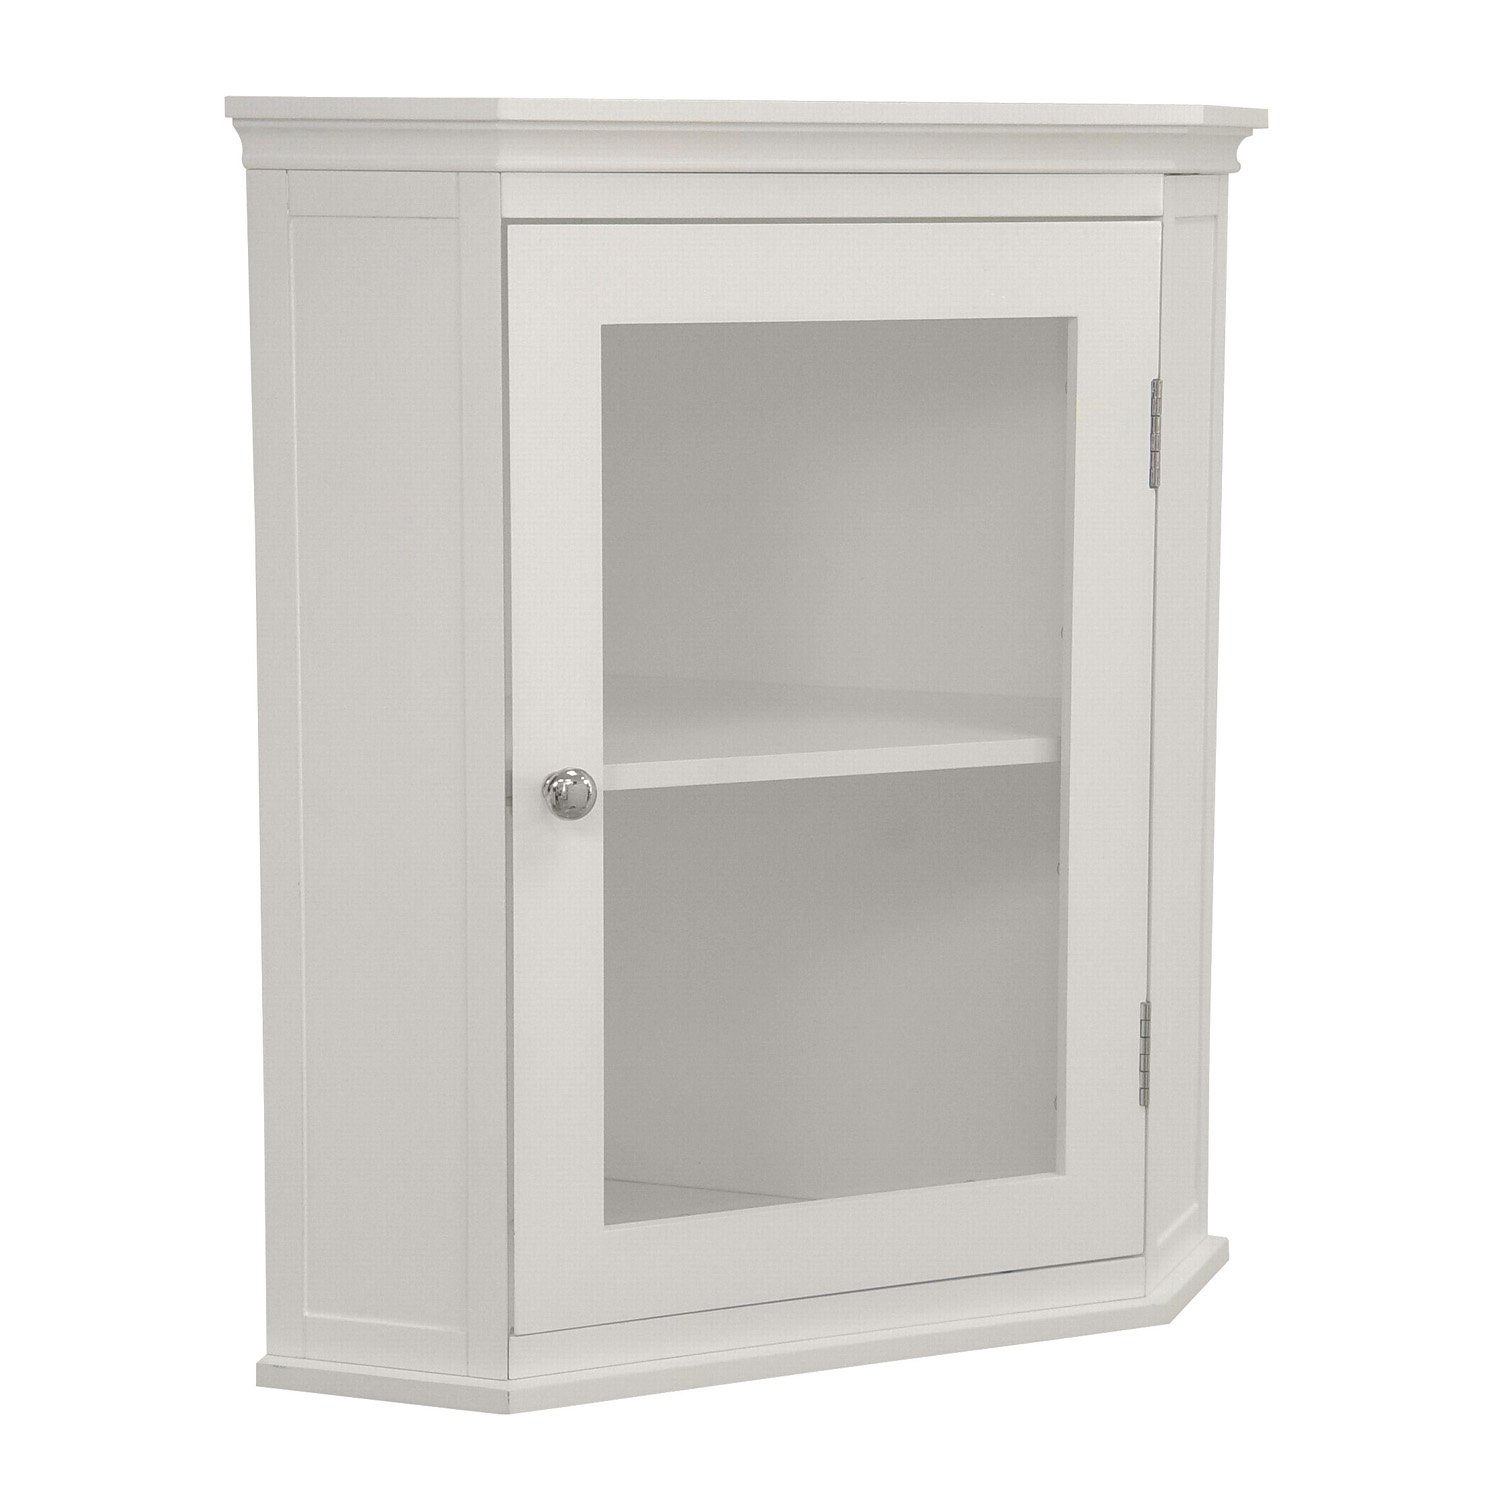 Exceptionnel Amazon.com: Elegant Home Fashions Madison Collection Shelved Corner Wall  Cabinet, White: Kitchen U0026 Dining